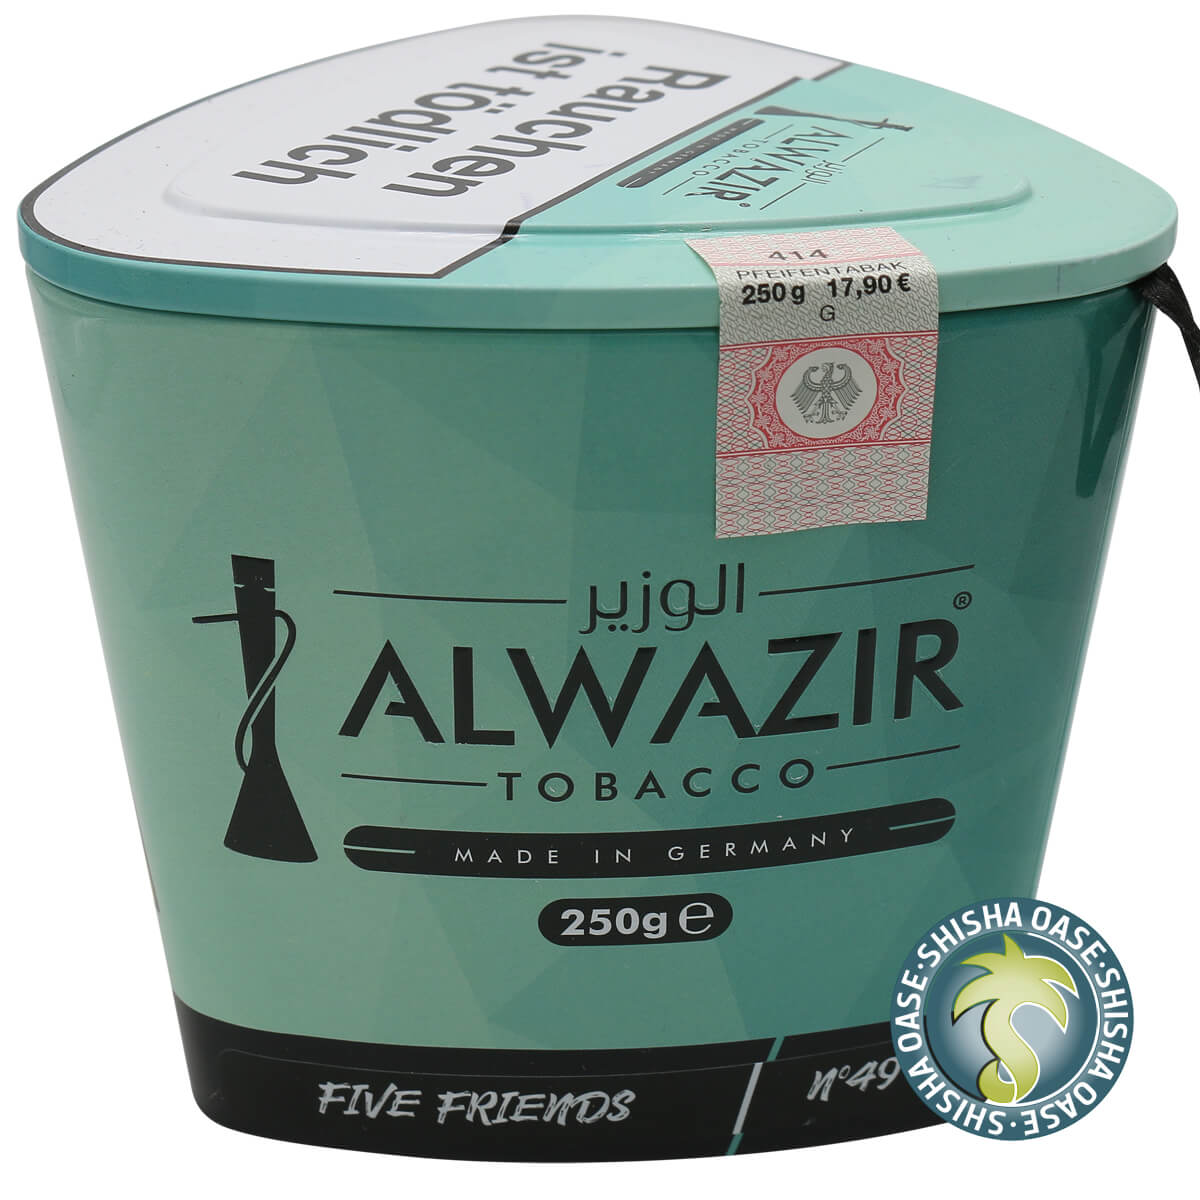 Al Wazir Tabak 250g Dose | Five Friends No.49